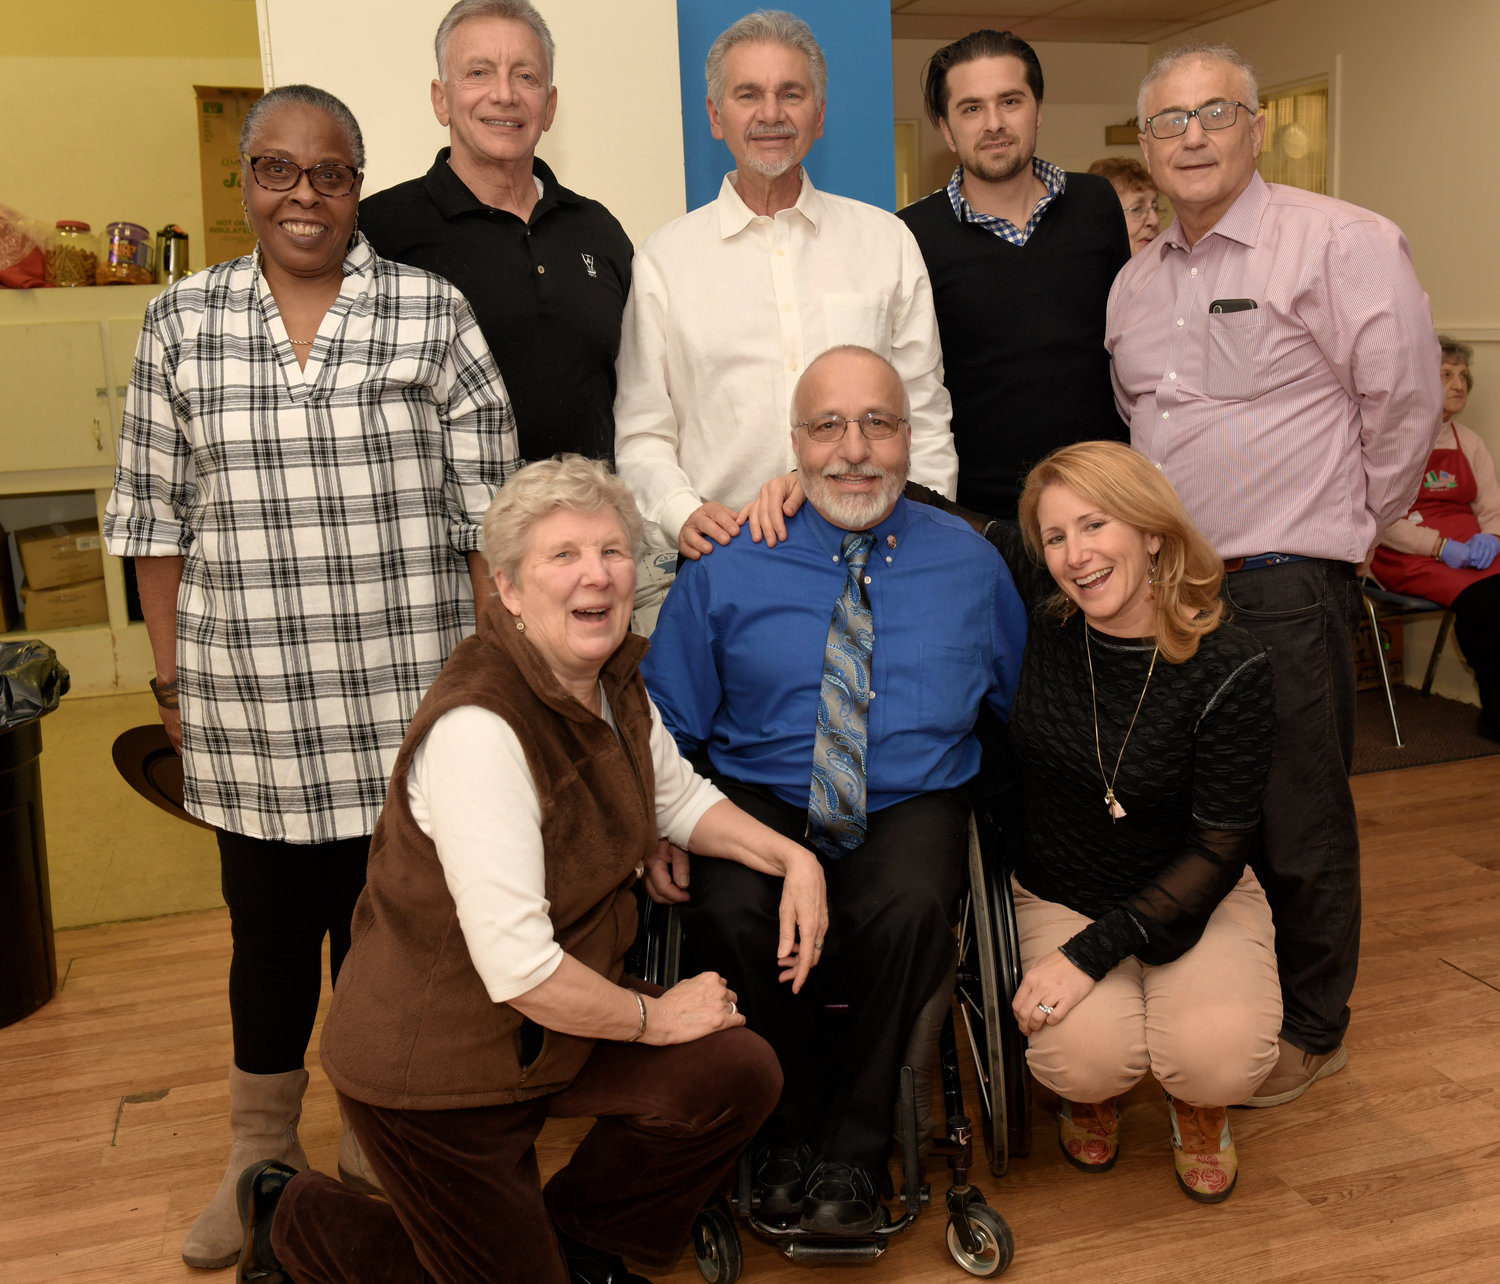 A committee made up of several of Glen Cove's most influential people decided that Zangari, bottom center, a former city councilman, was more than deserving of a fundraiser for his cancer treatment.